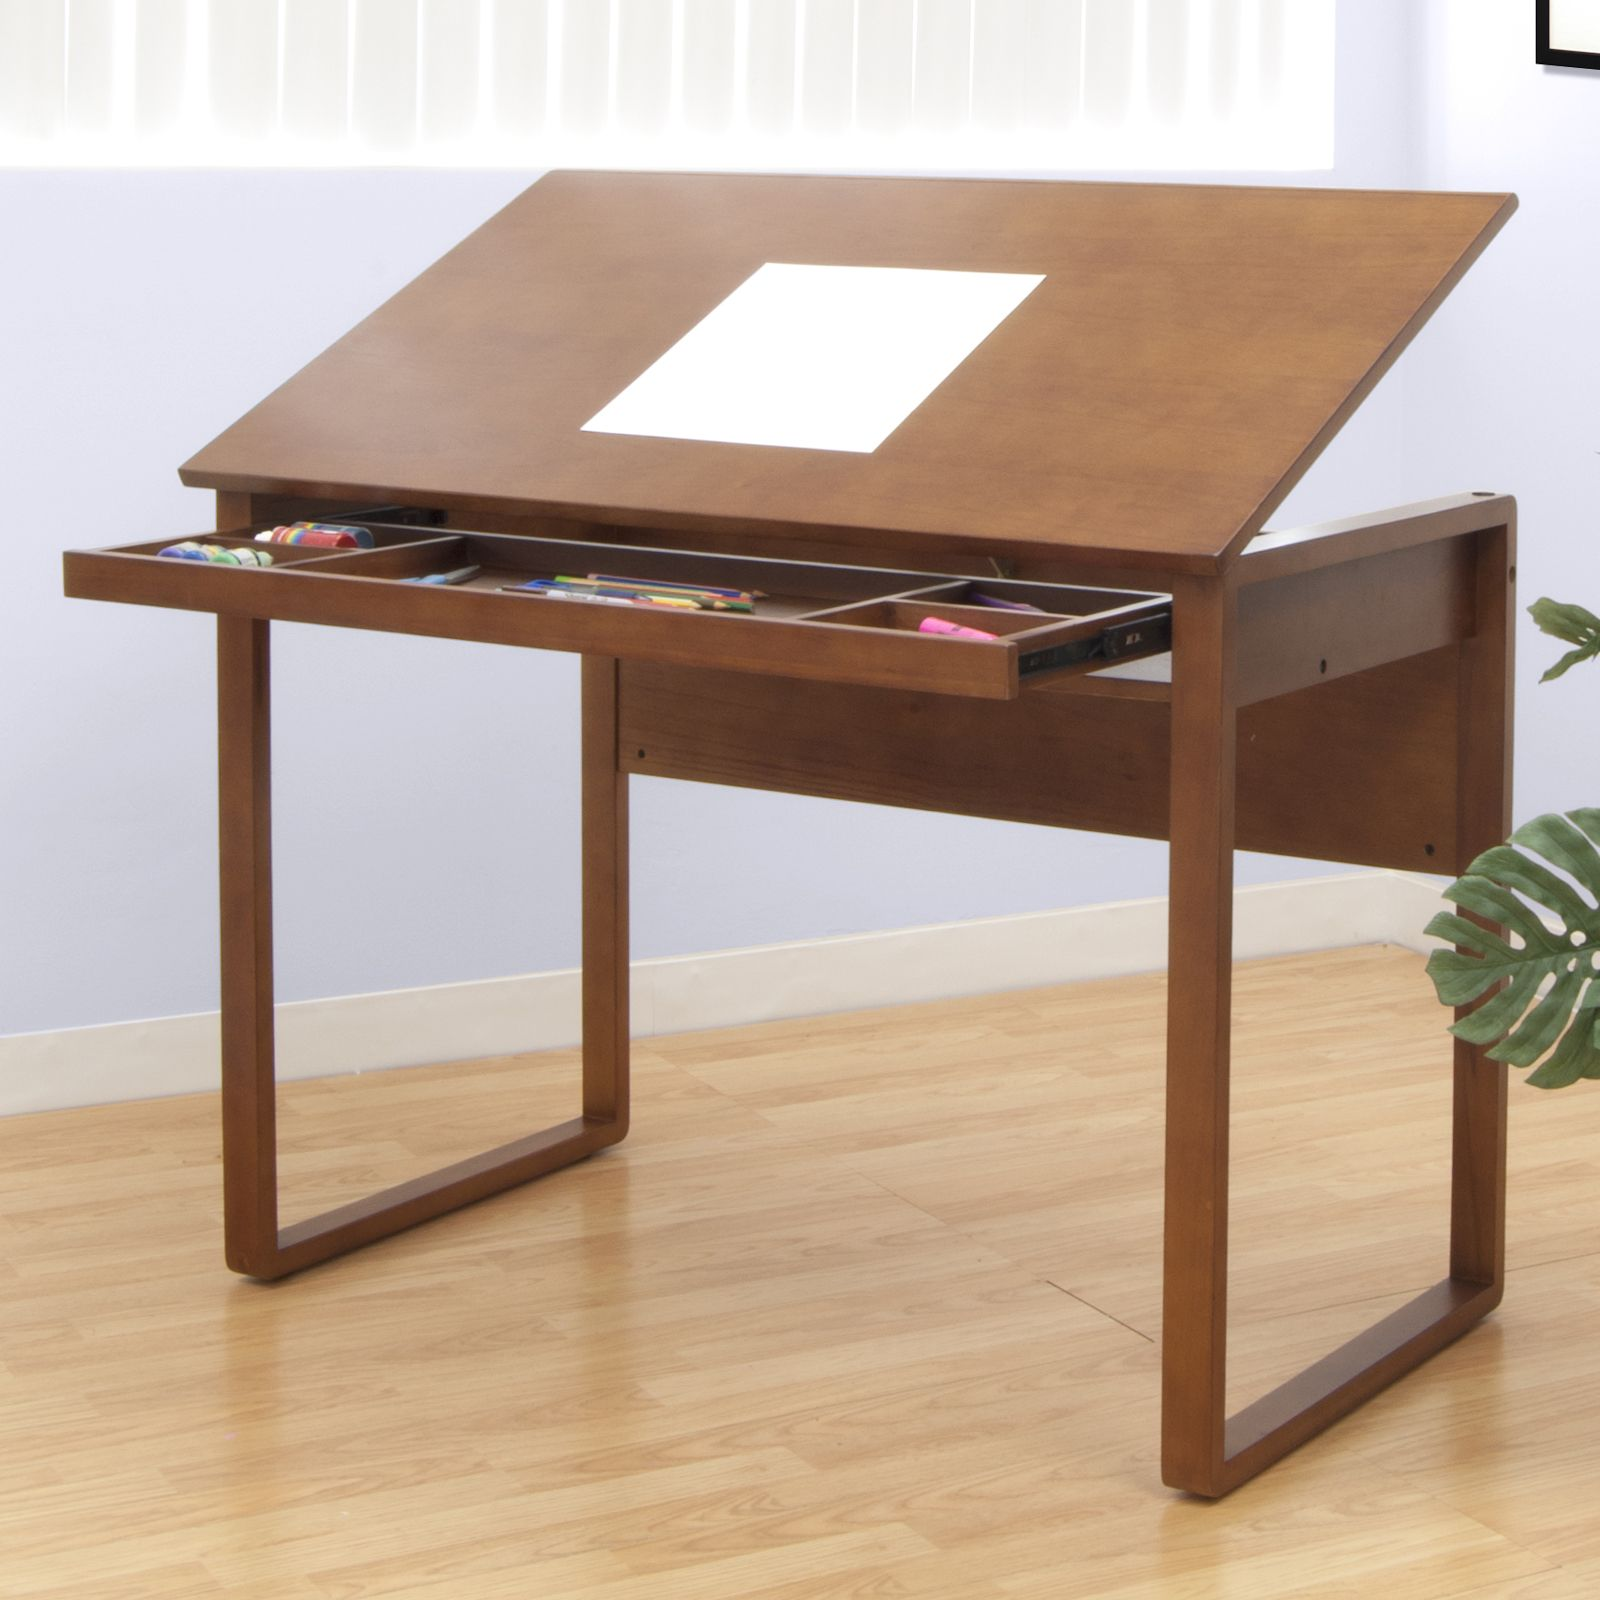 Drafting Table Design Ponderosa Wooden Drafting Table By Studio Designs Warm